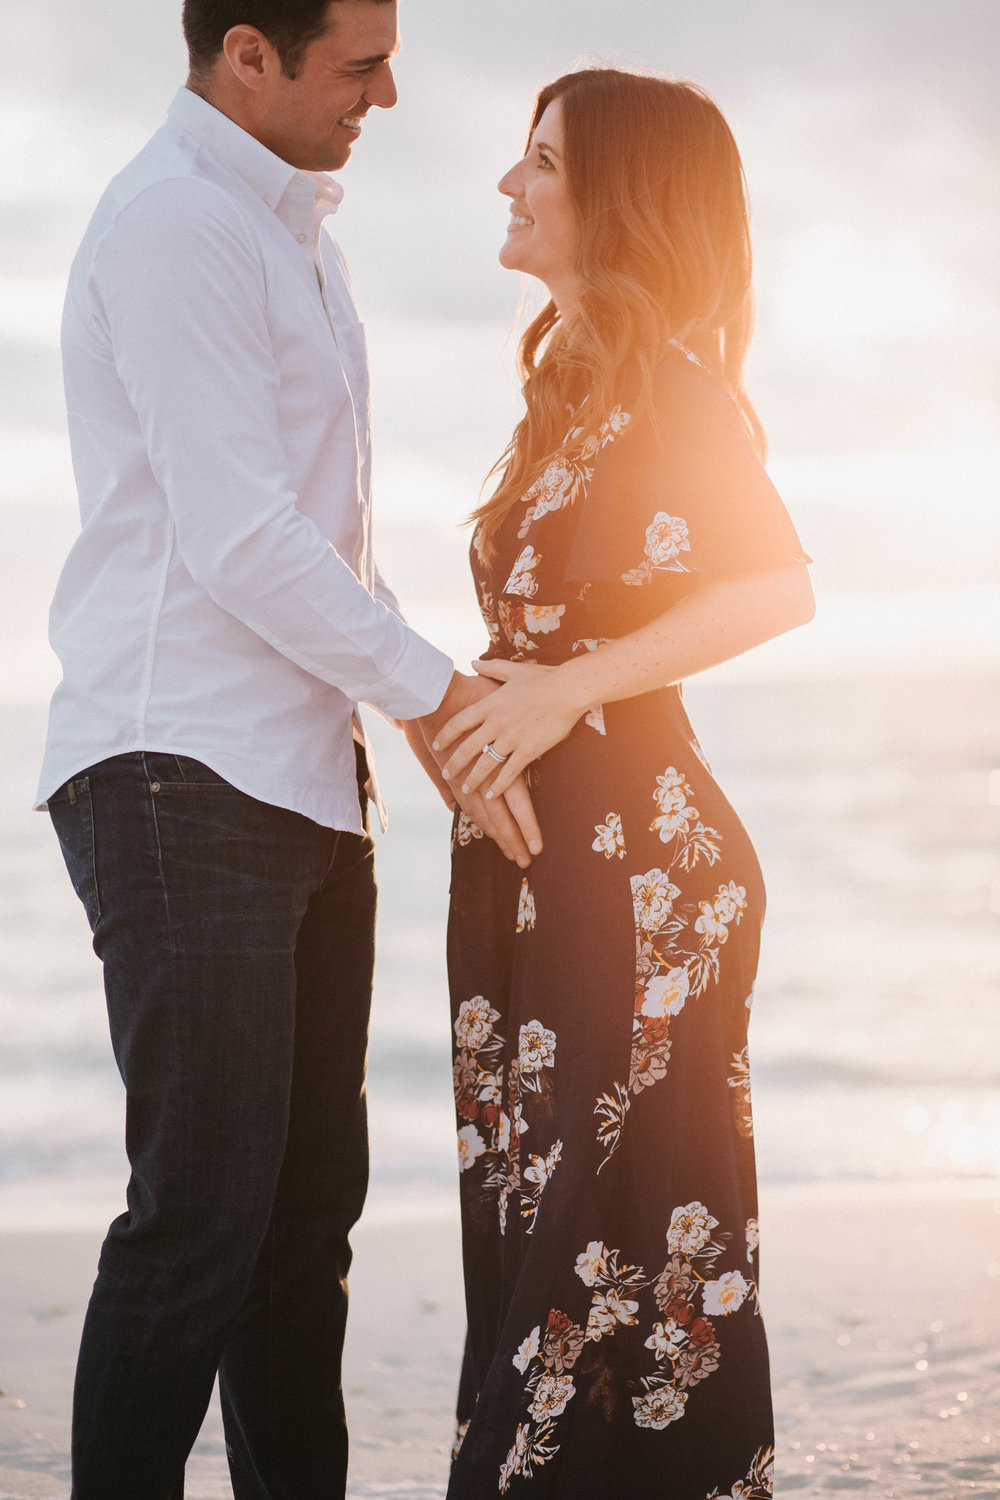 maternity photography, tampa bay fl